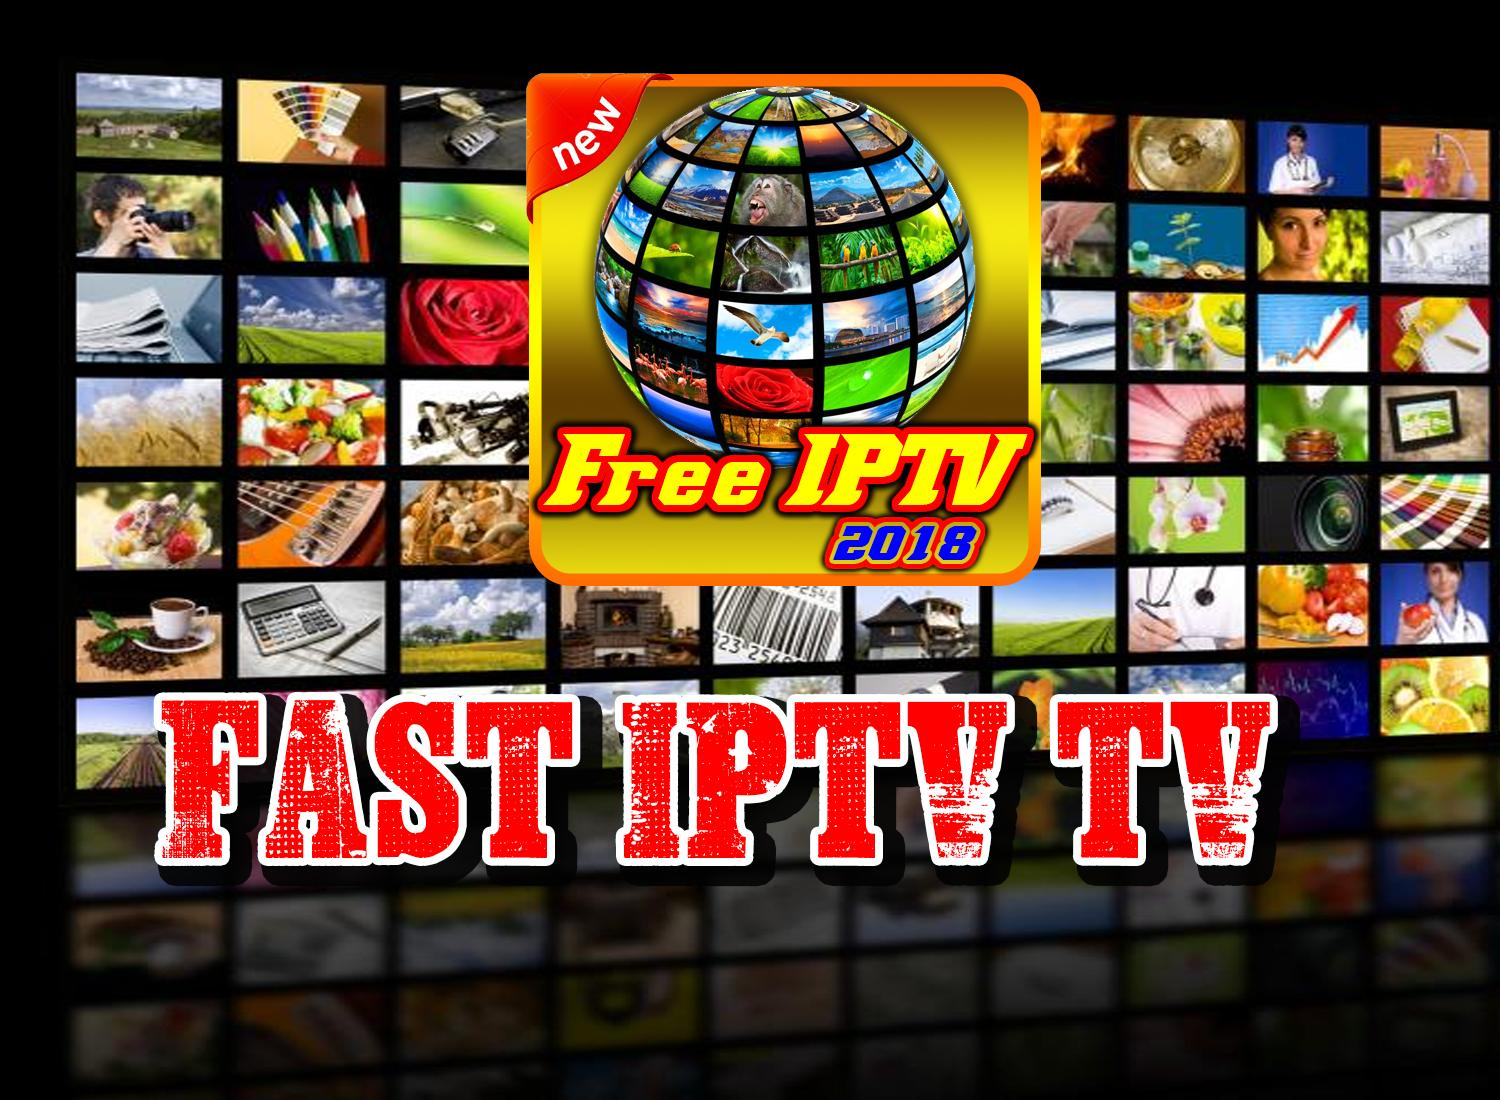 Best IPTV Daily Player TV 2018 for Android - APK Download